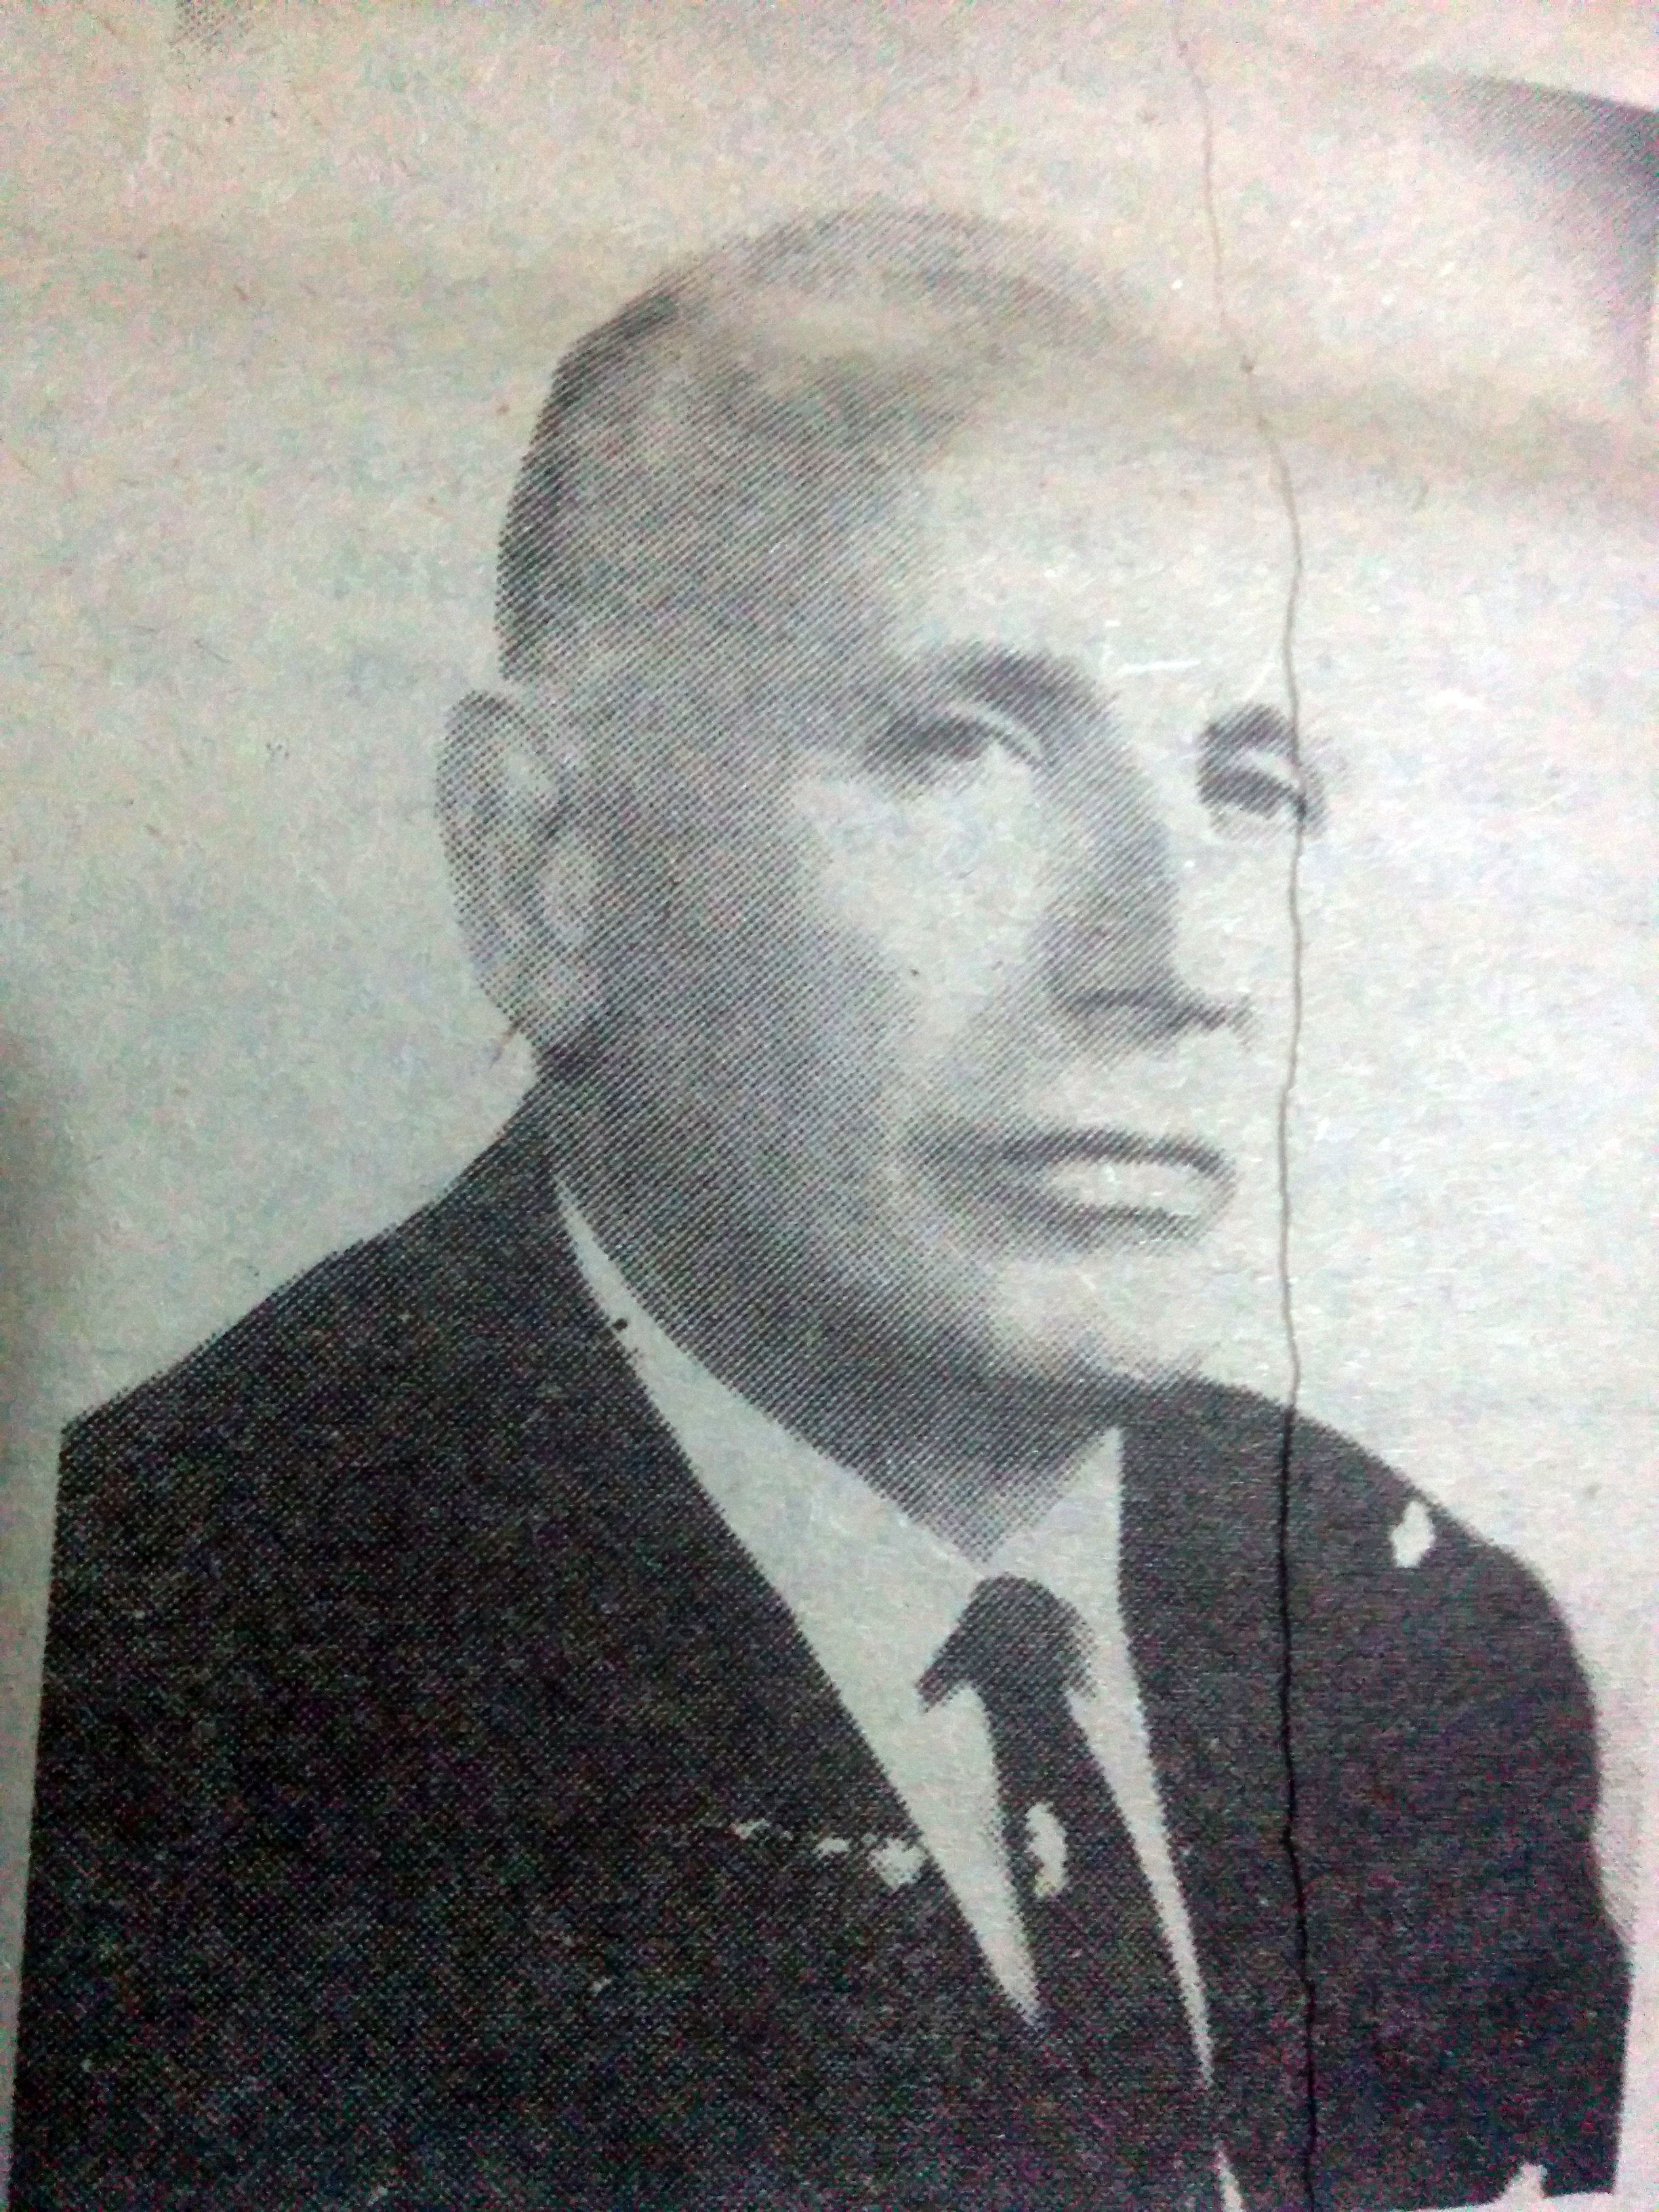 Ernesto Domingo Marrone (1911-1986)